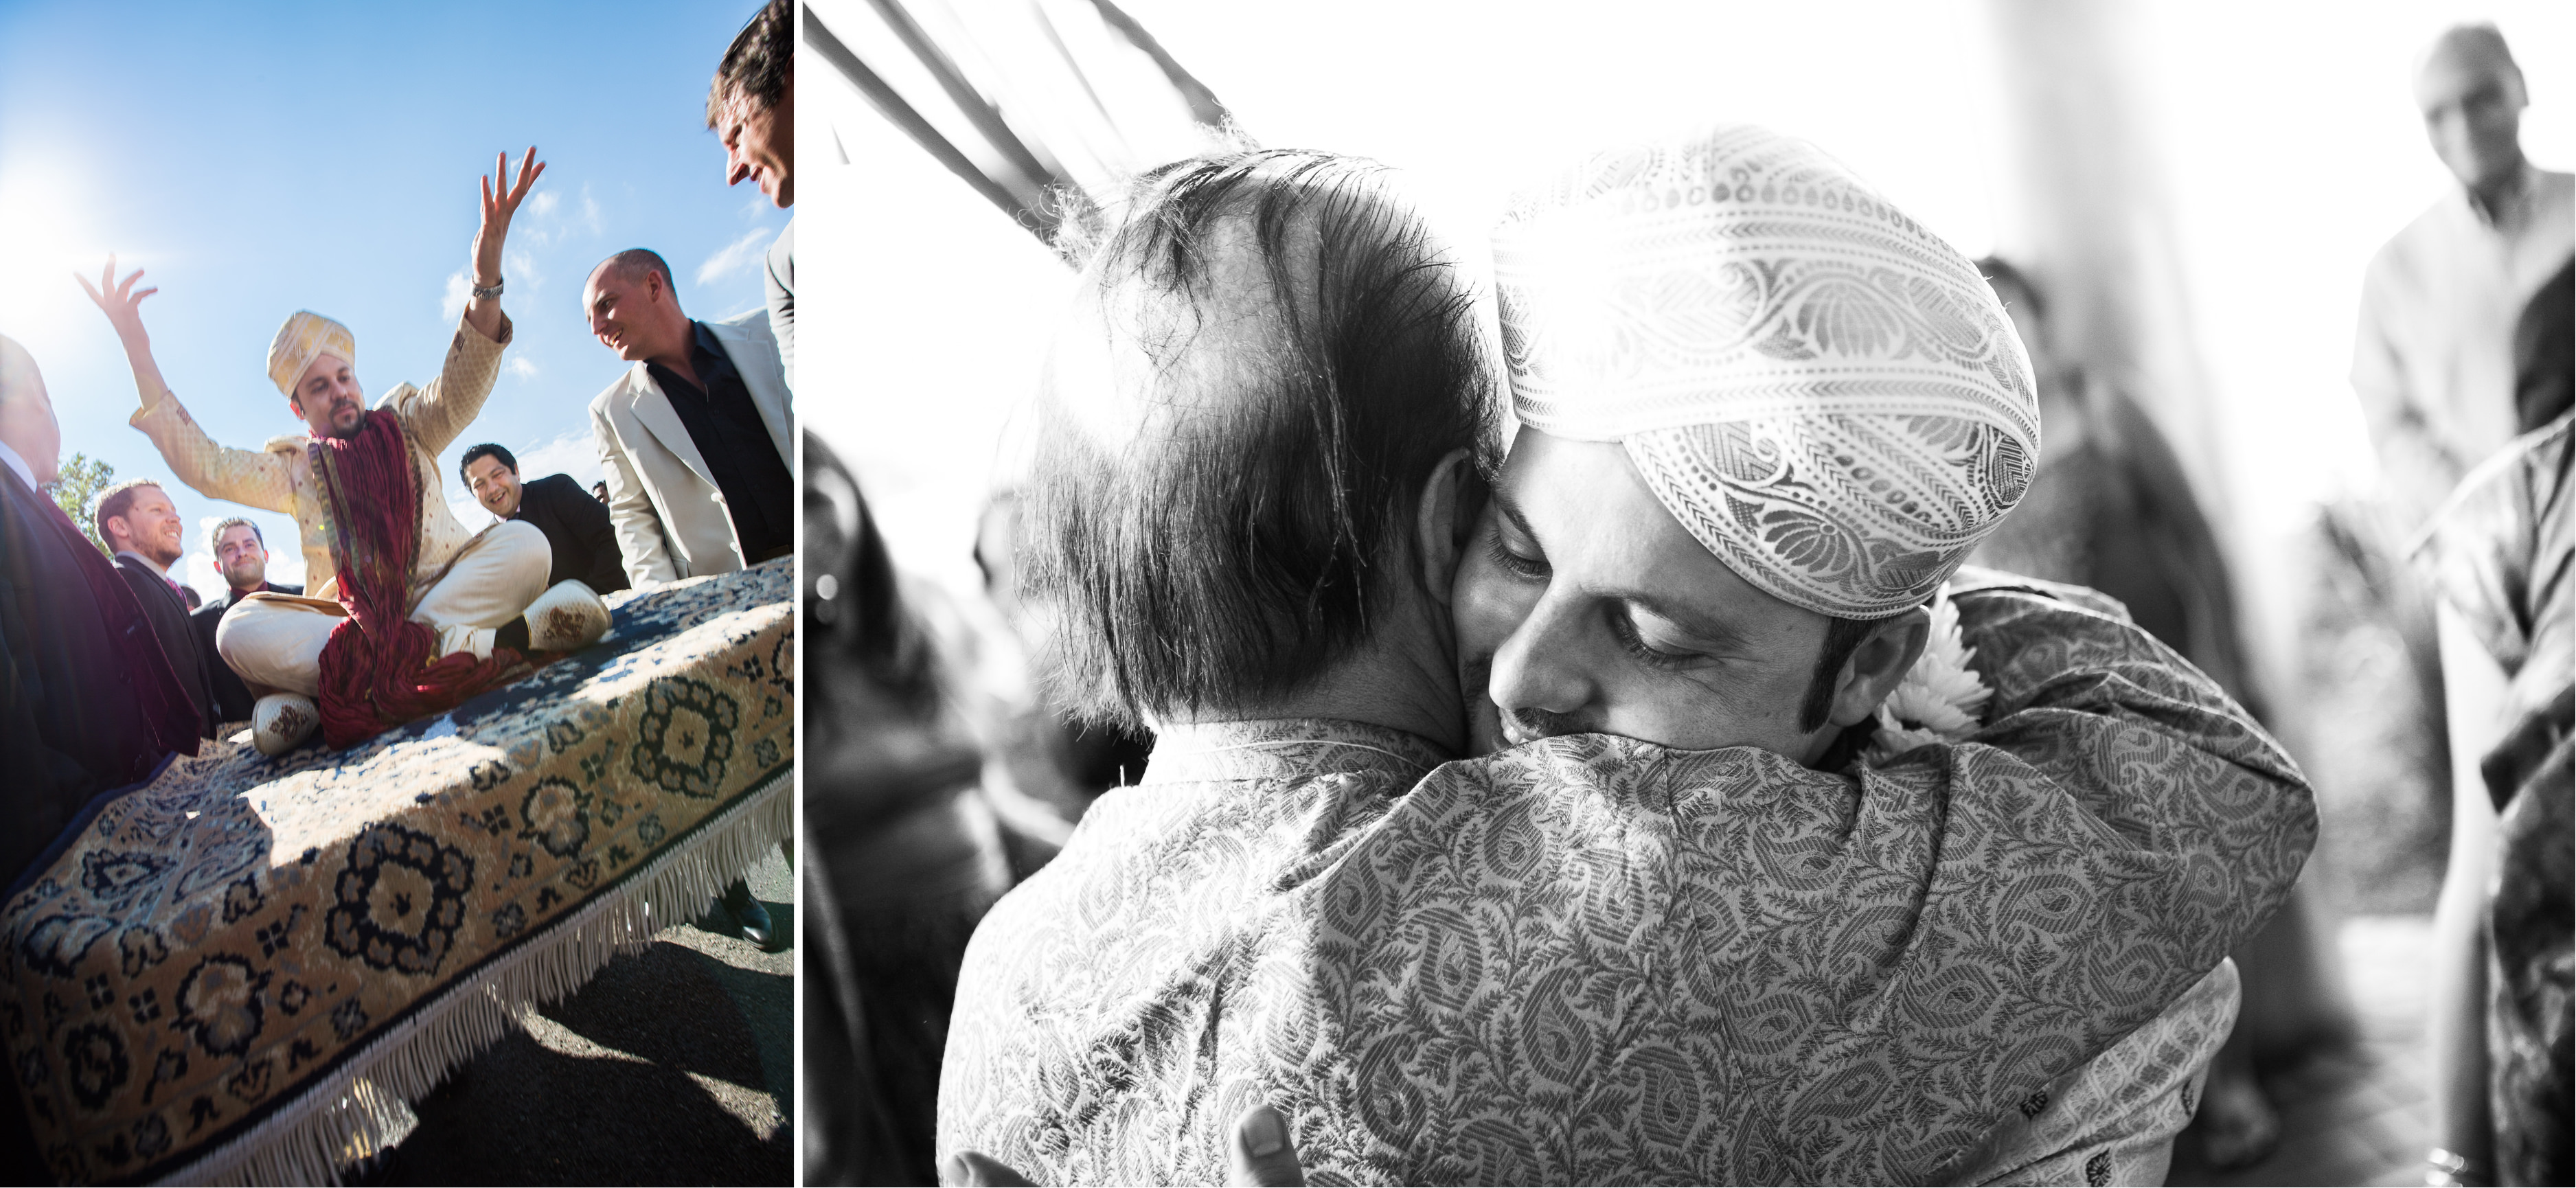 Emma_cleary_photography Indian Wedding9